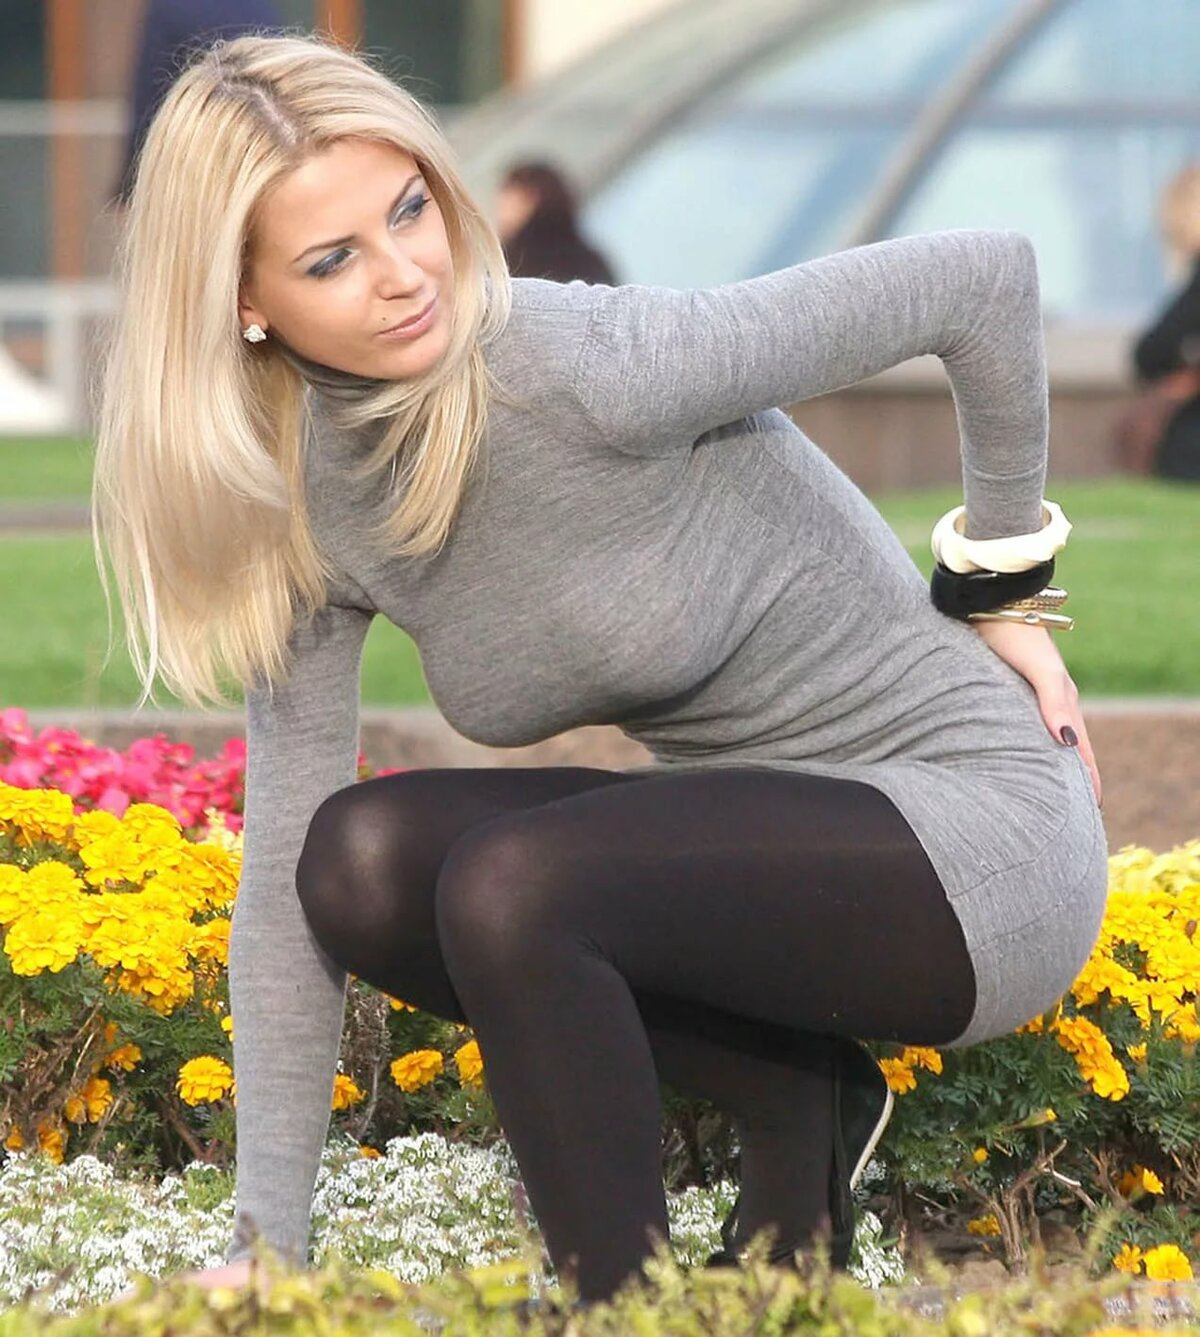 German girls and pantyhose